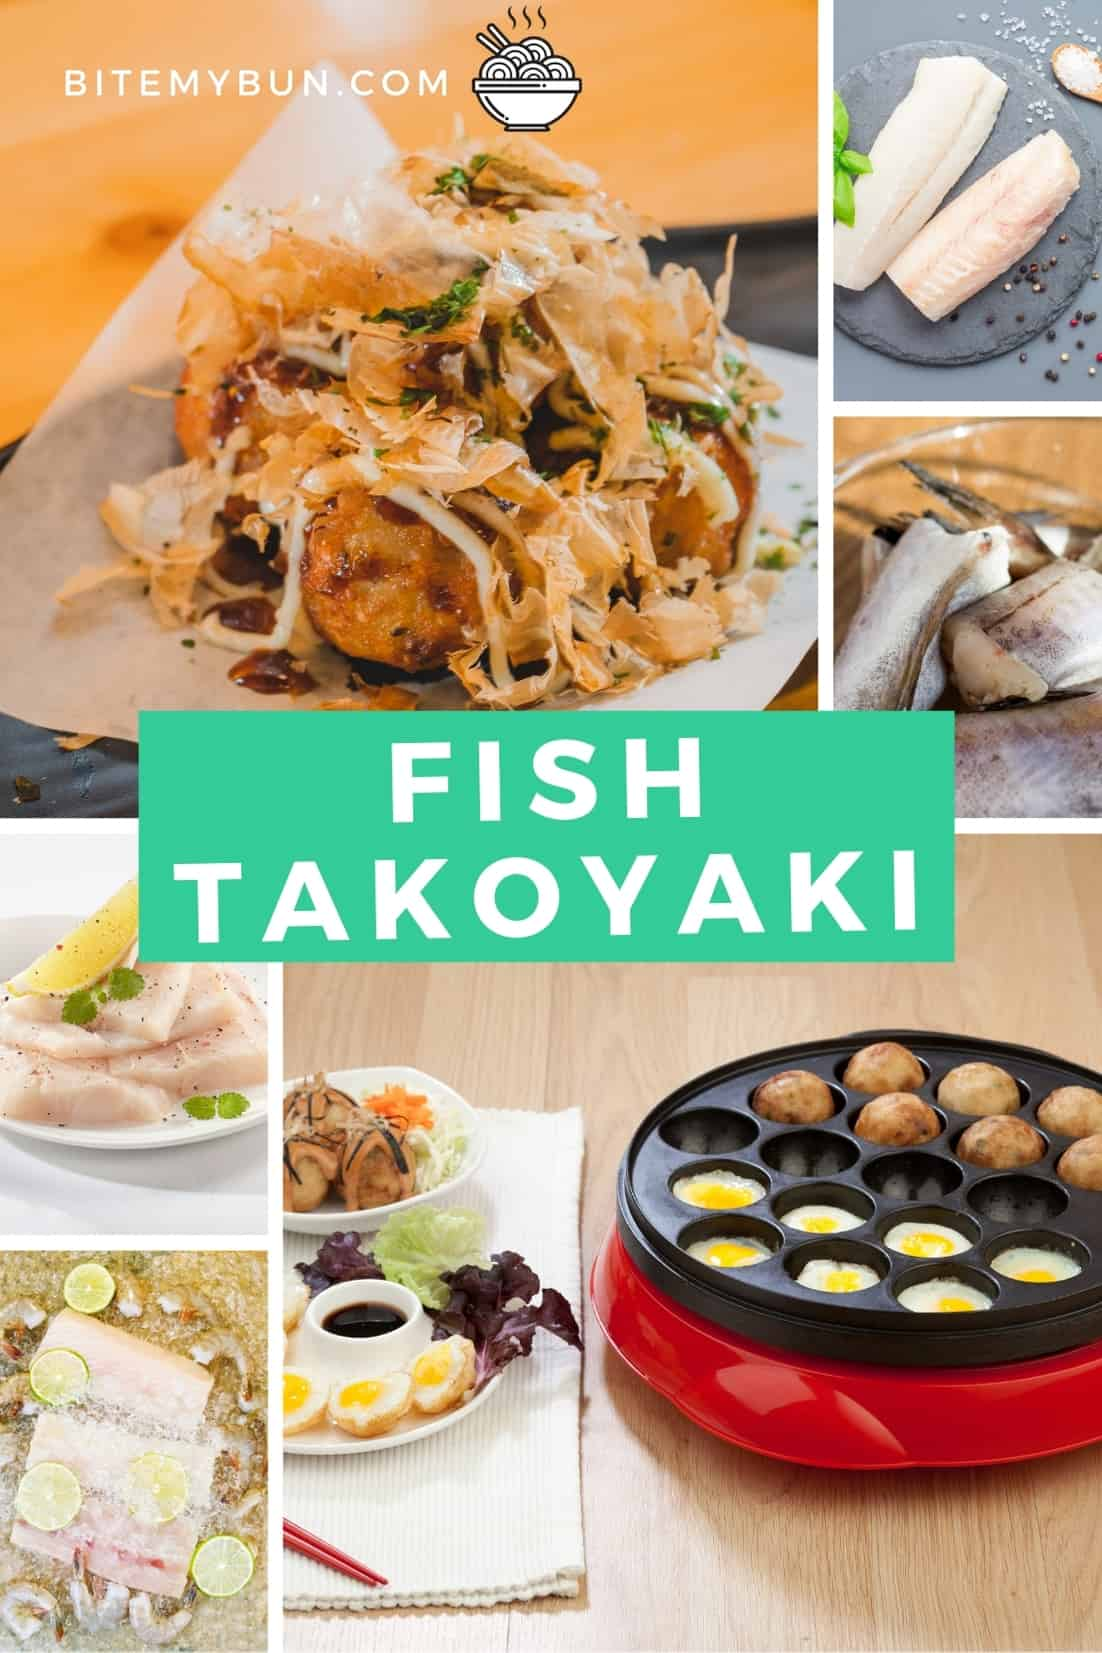 Best white fish to use for takoyaki